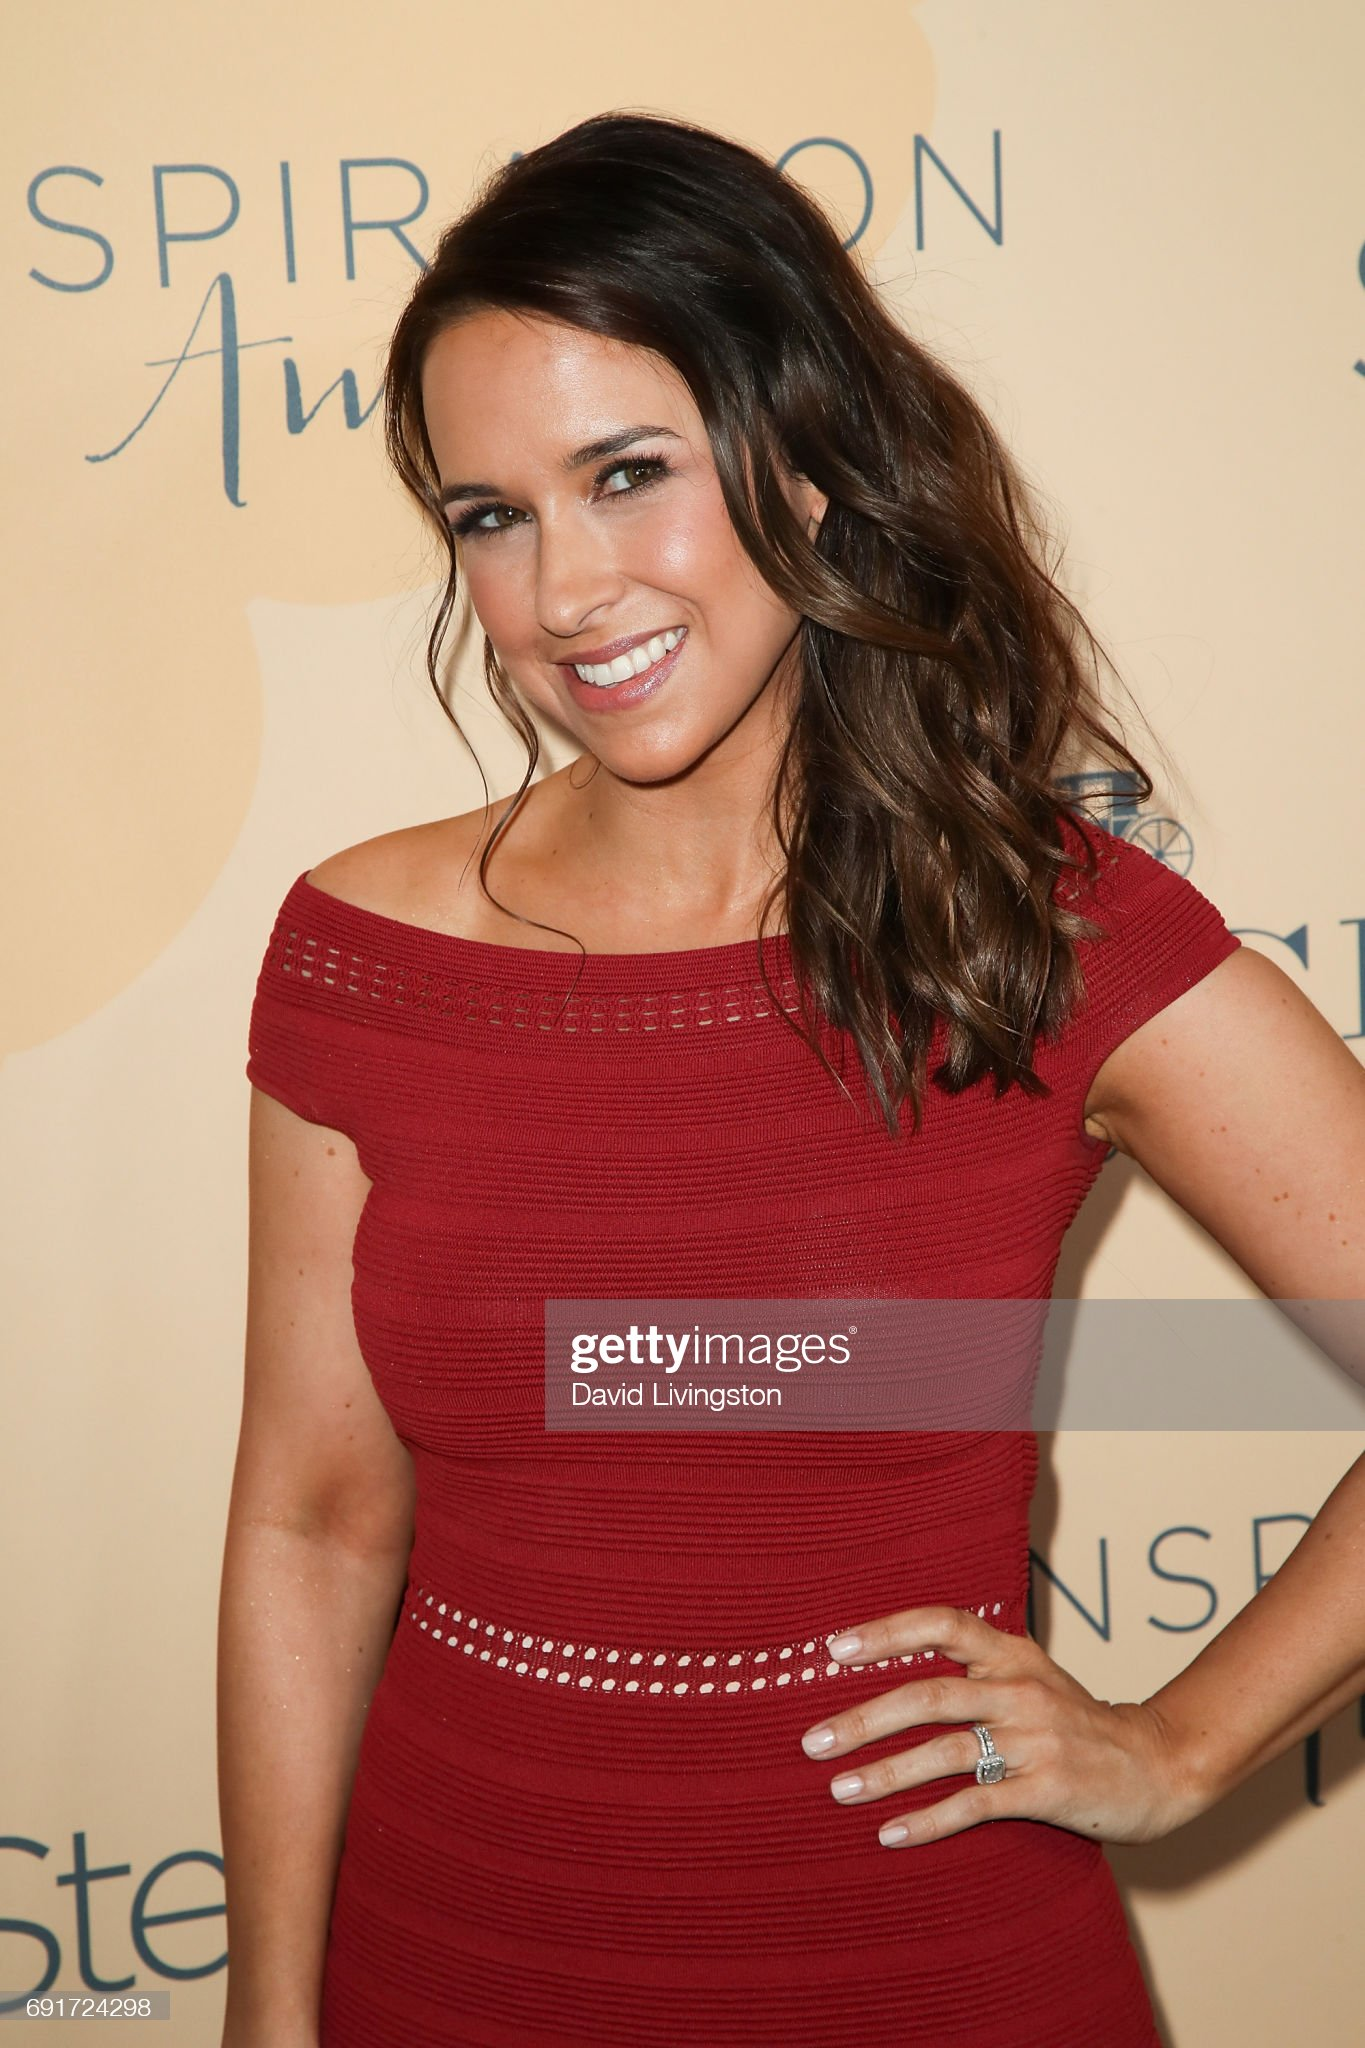 DEBATE sobre guapura de famosos y famosas - Página 3 Actress-lacey-chabert-attends-the-14th-annual-inspiration-awards-at-picture-id691724298?s=2048x2048